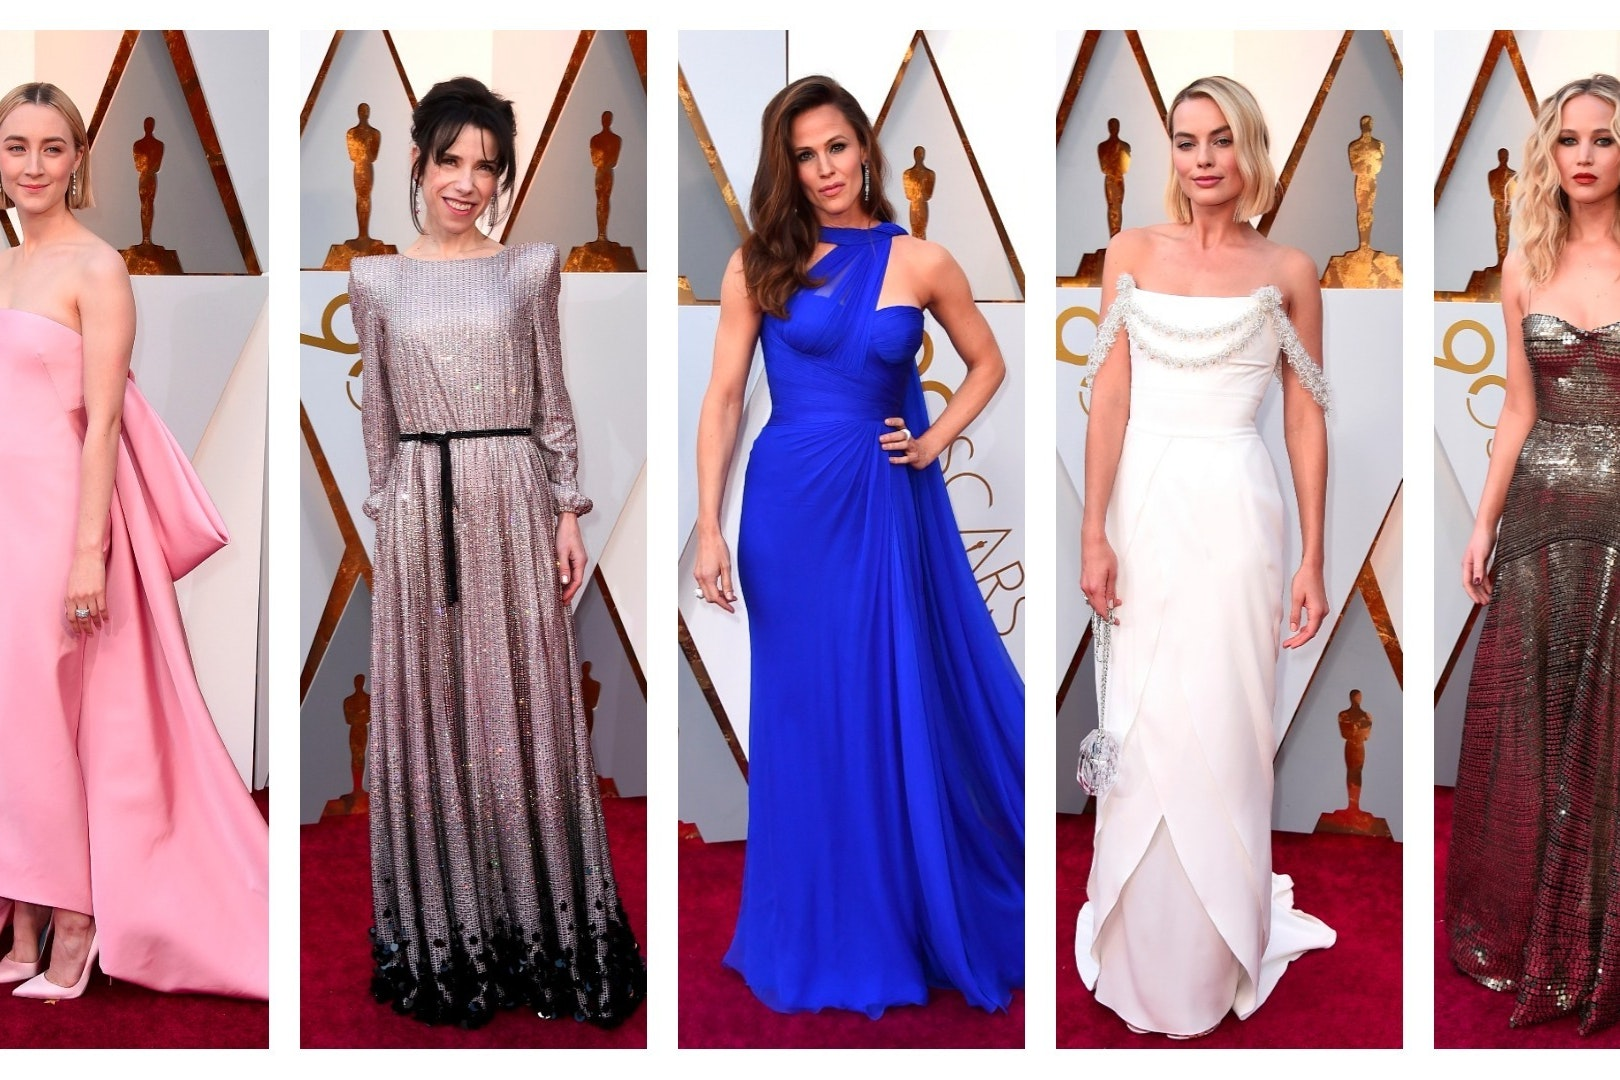 Colourful brights, whites and shimmering tones rule on Oscars red carpet (AP Images)